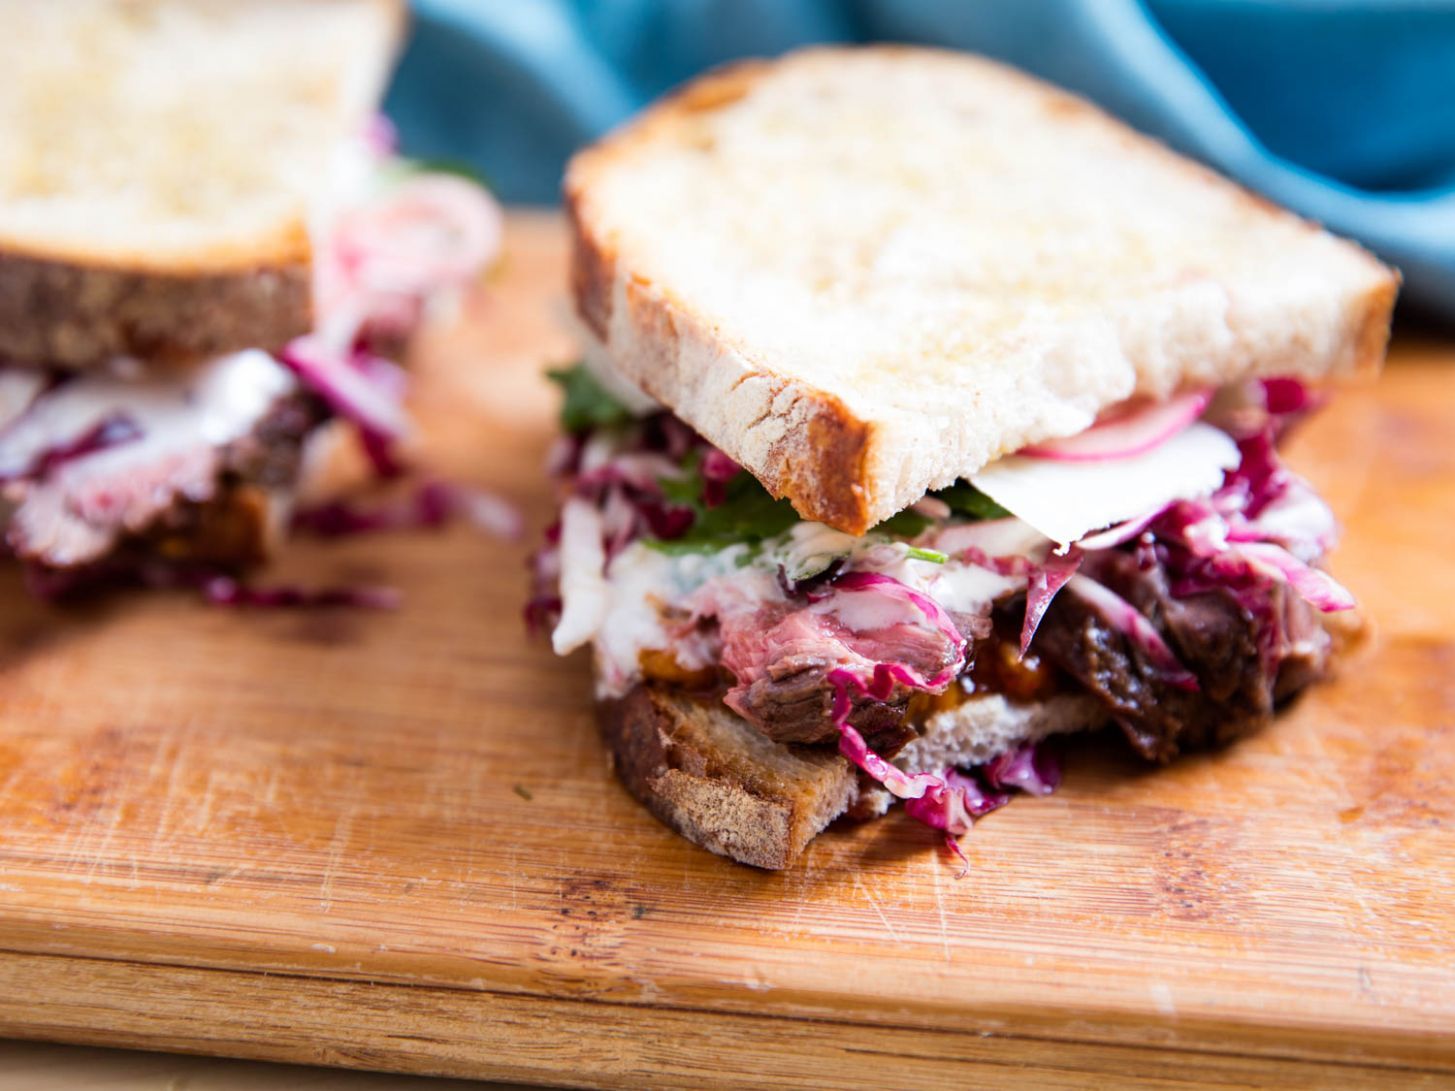 Steak Sandwiches With Roasted Tomatoes, Parmesan, and Radicchio Recipe - Recipes With Sandwich Steak